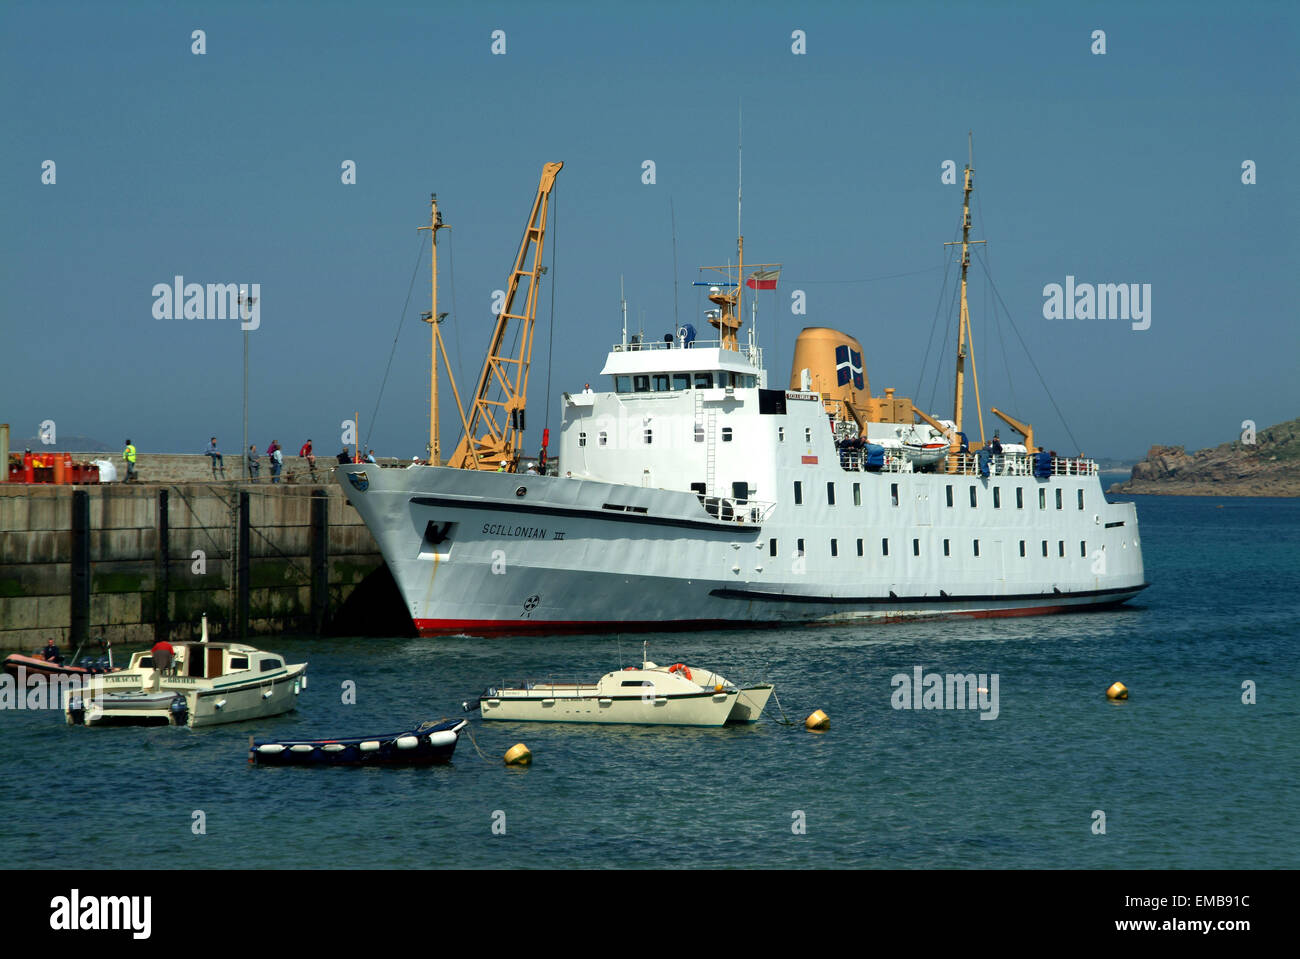 The RMV Scillonian lll passenger ship in Huw Town harbour, St.Marys, Scilly Isles - Stock Image